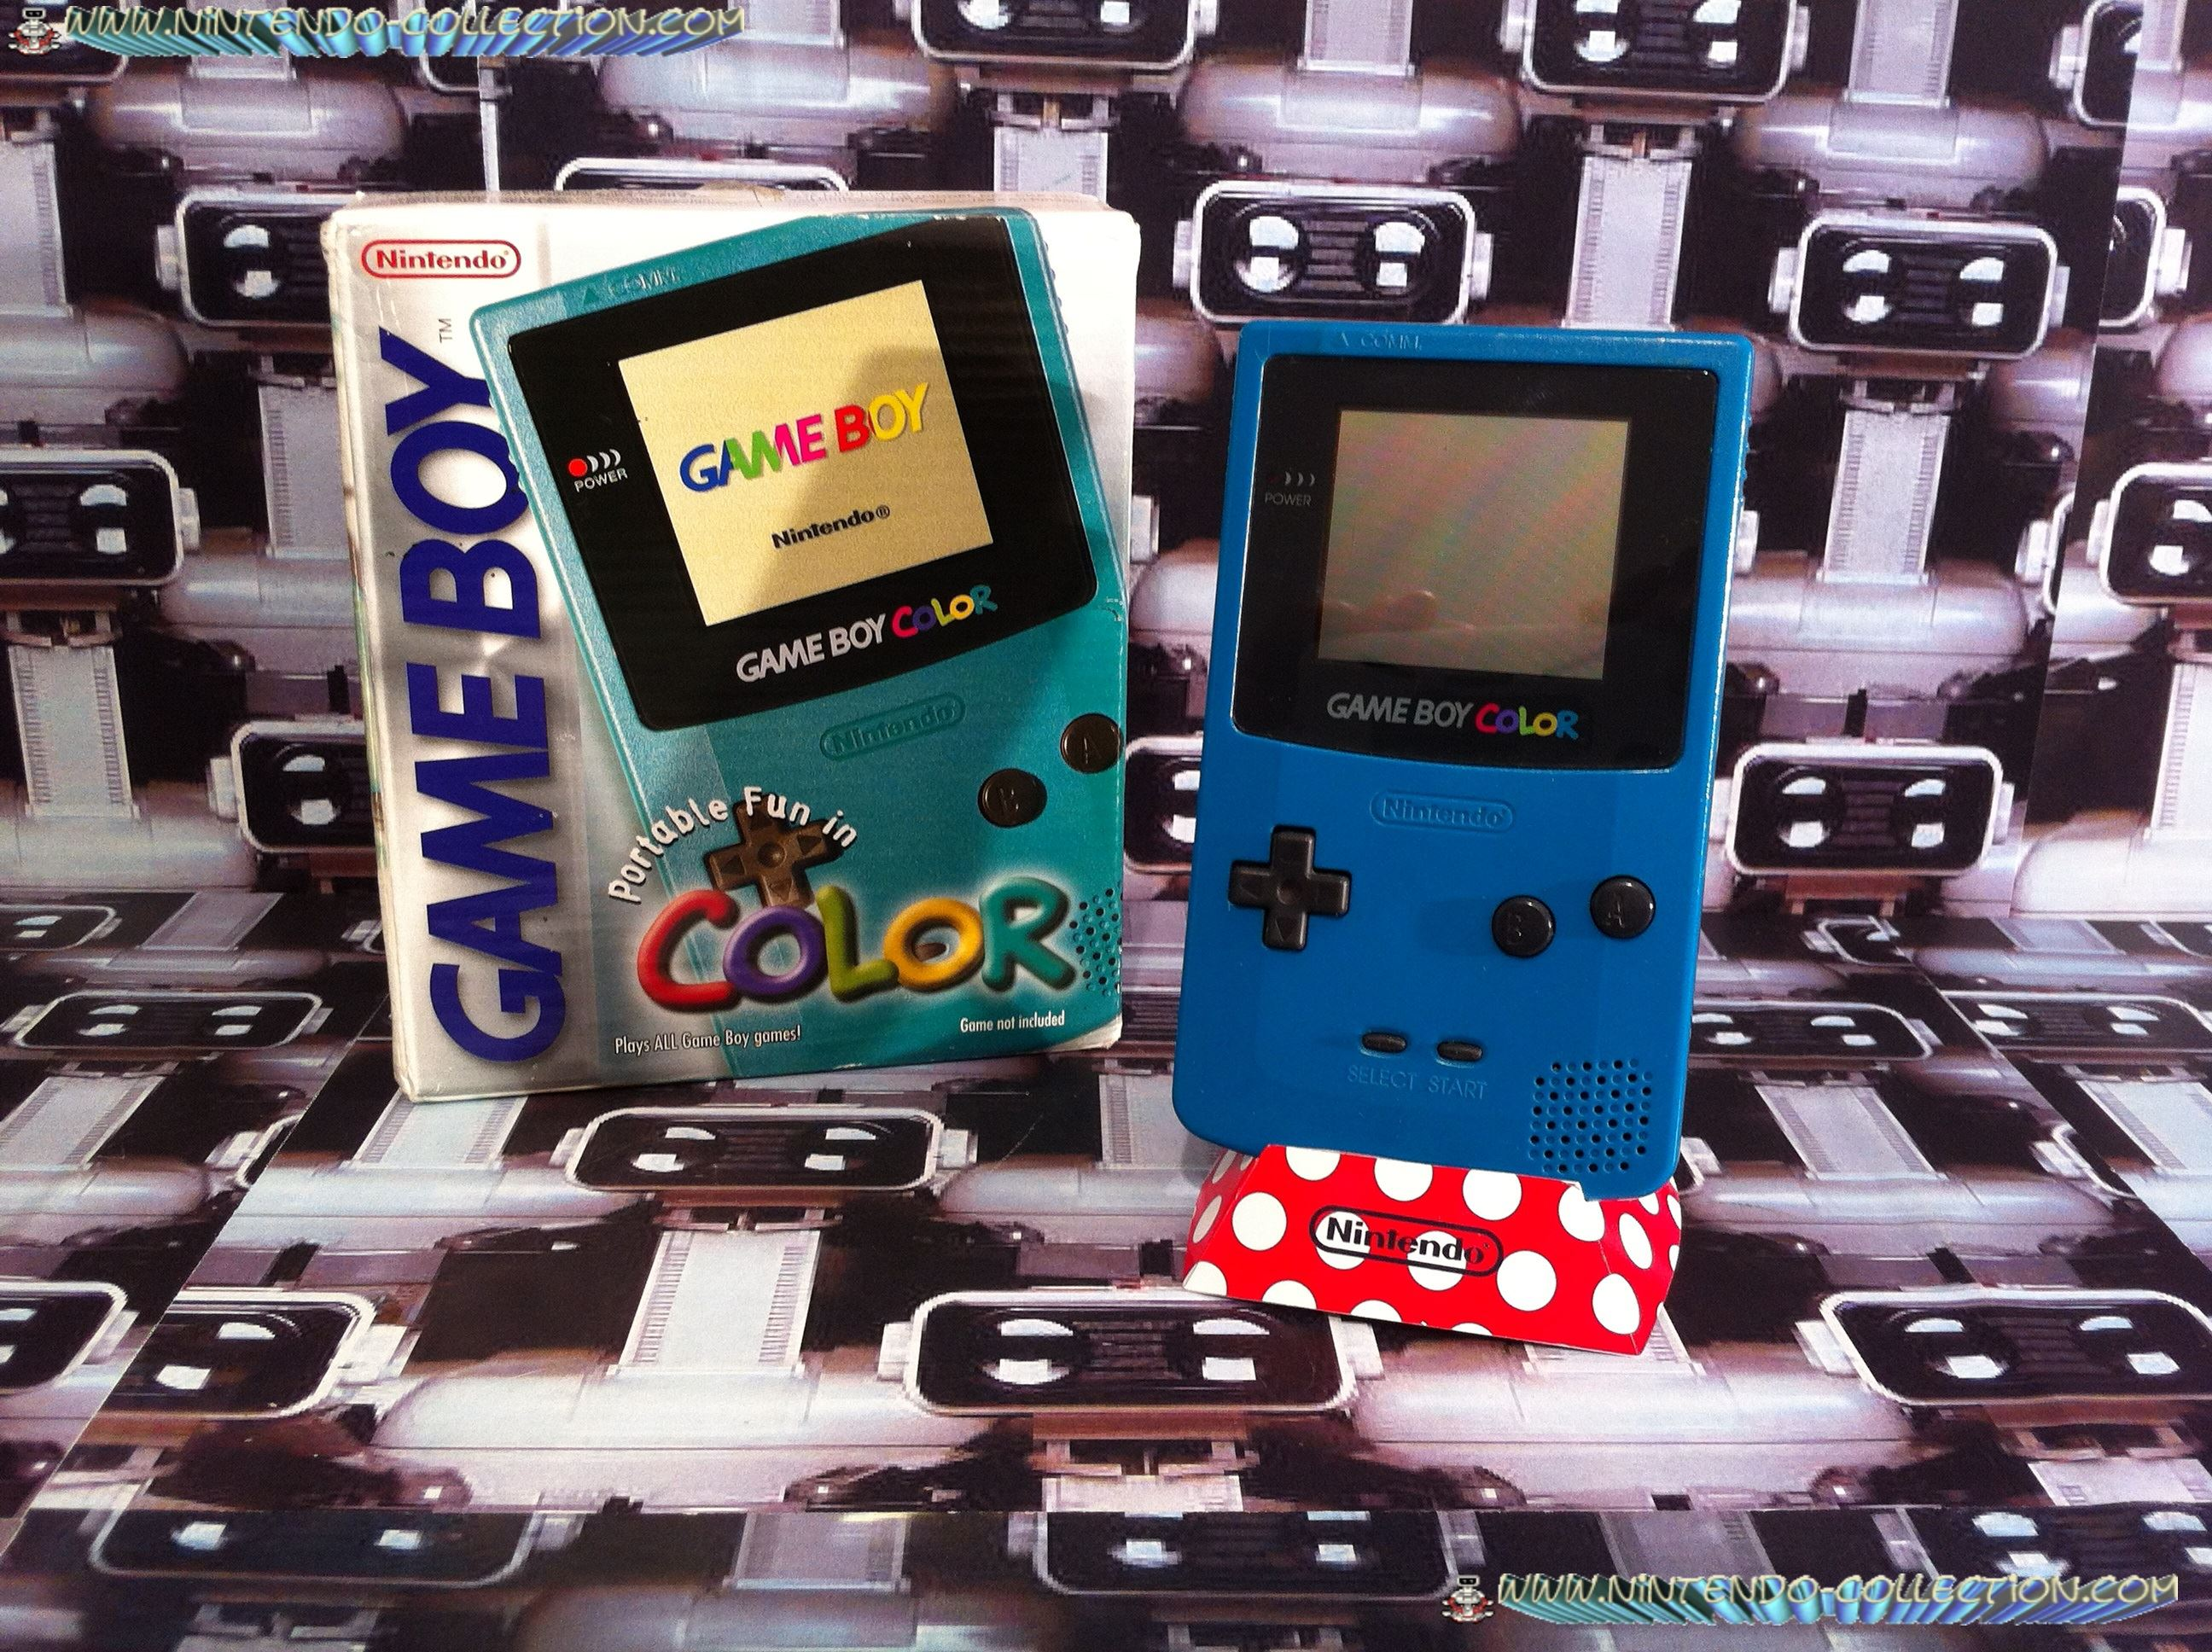 www.nintendo-collection.com - Gameboy Color Bleu green bleu vert edition auropean europe